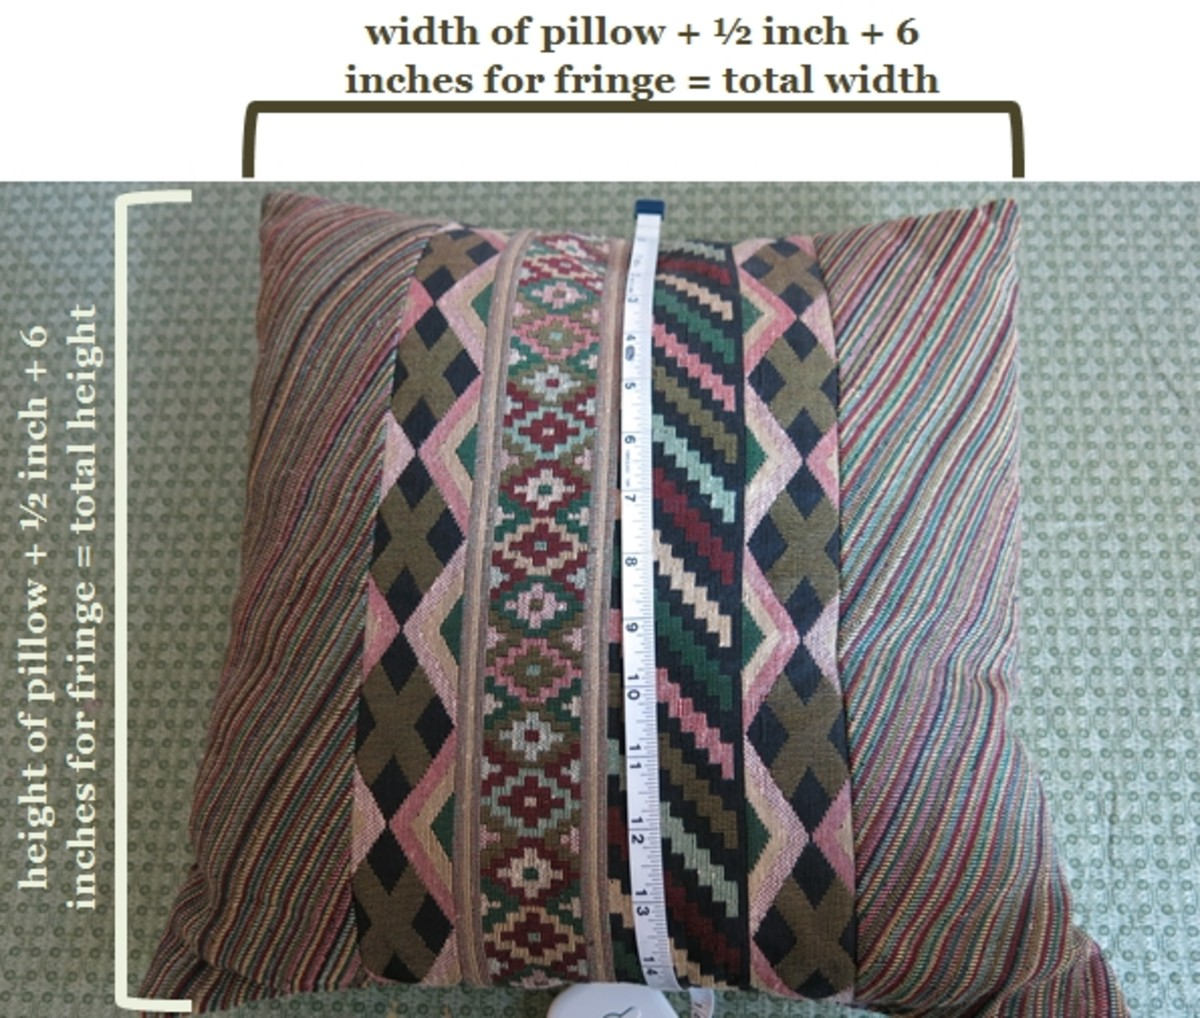 Instructions for making a no-sew holiday pillow